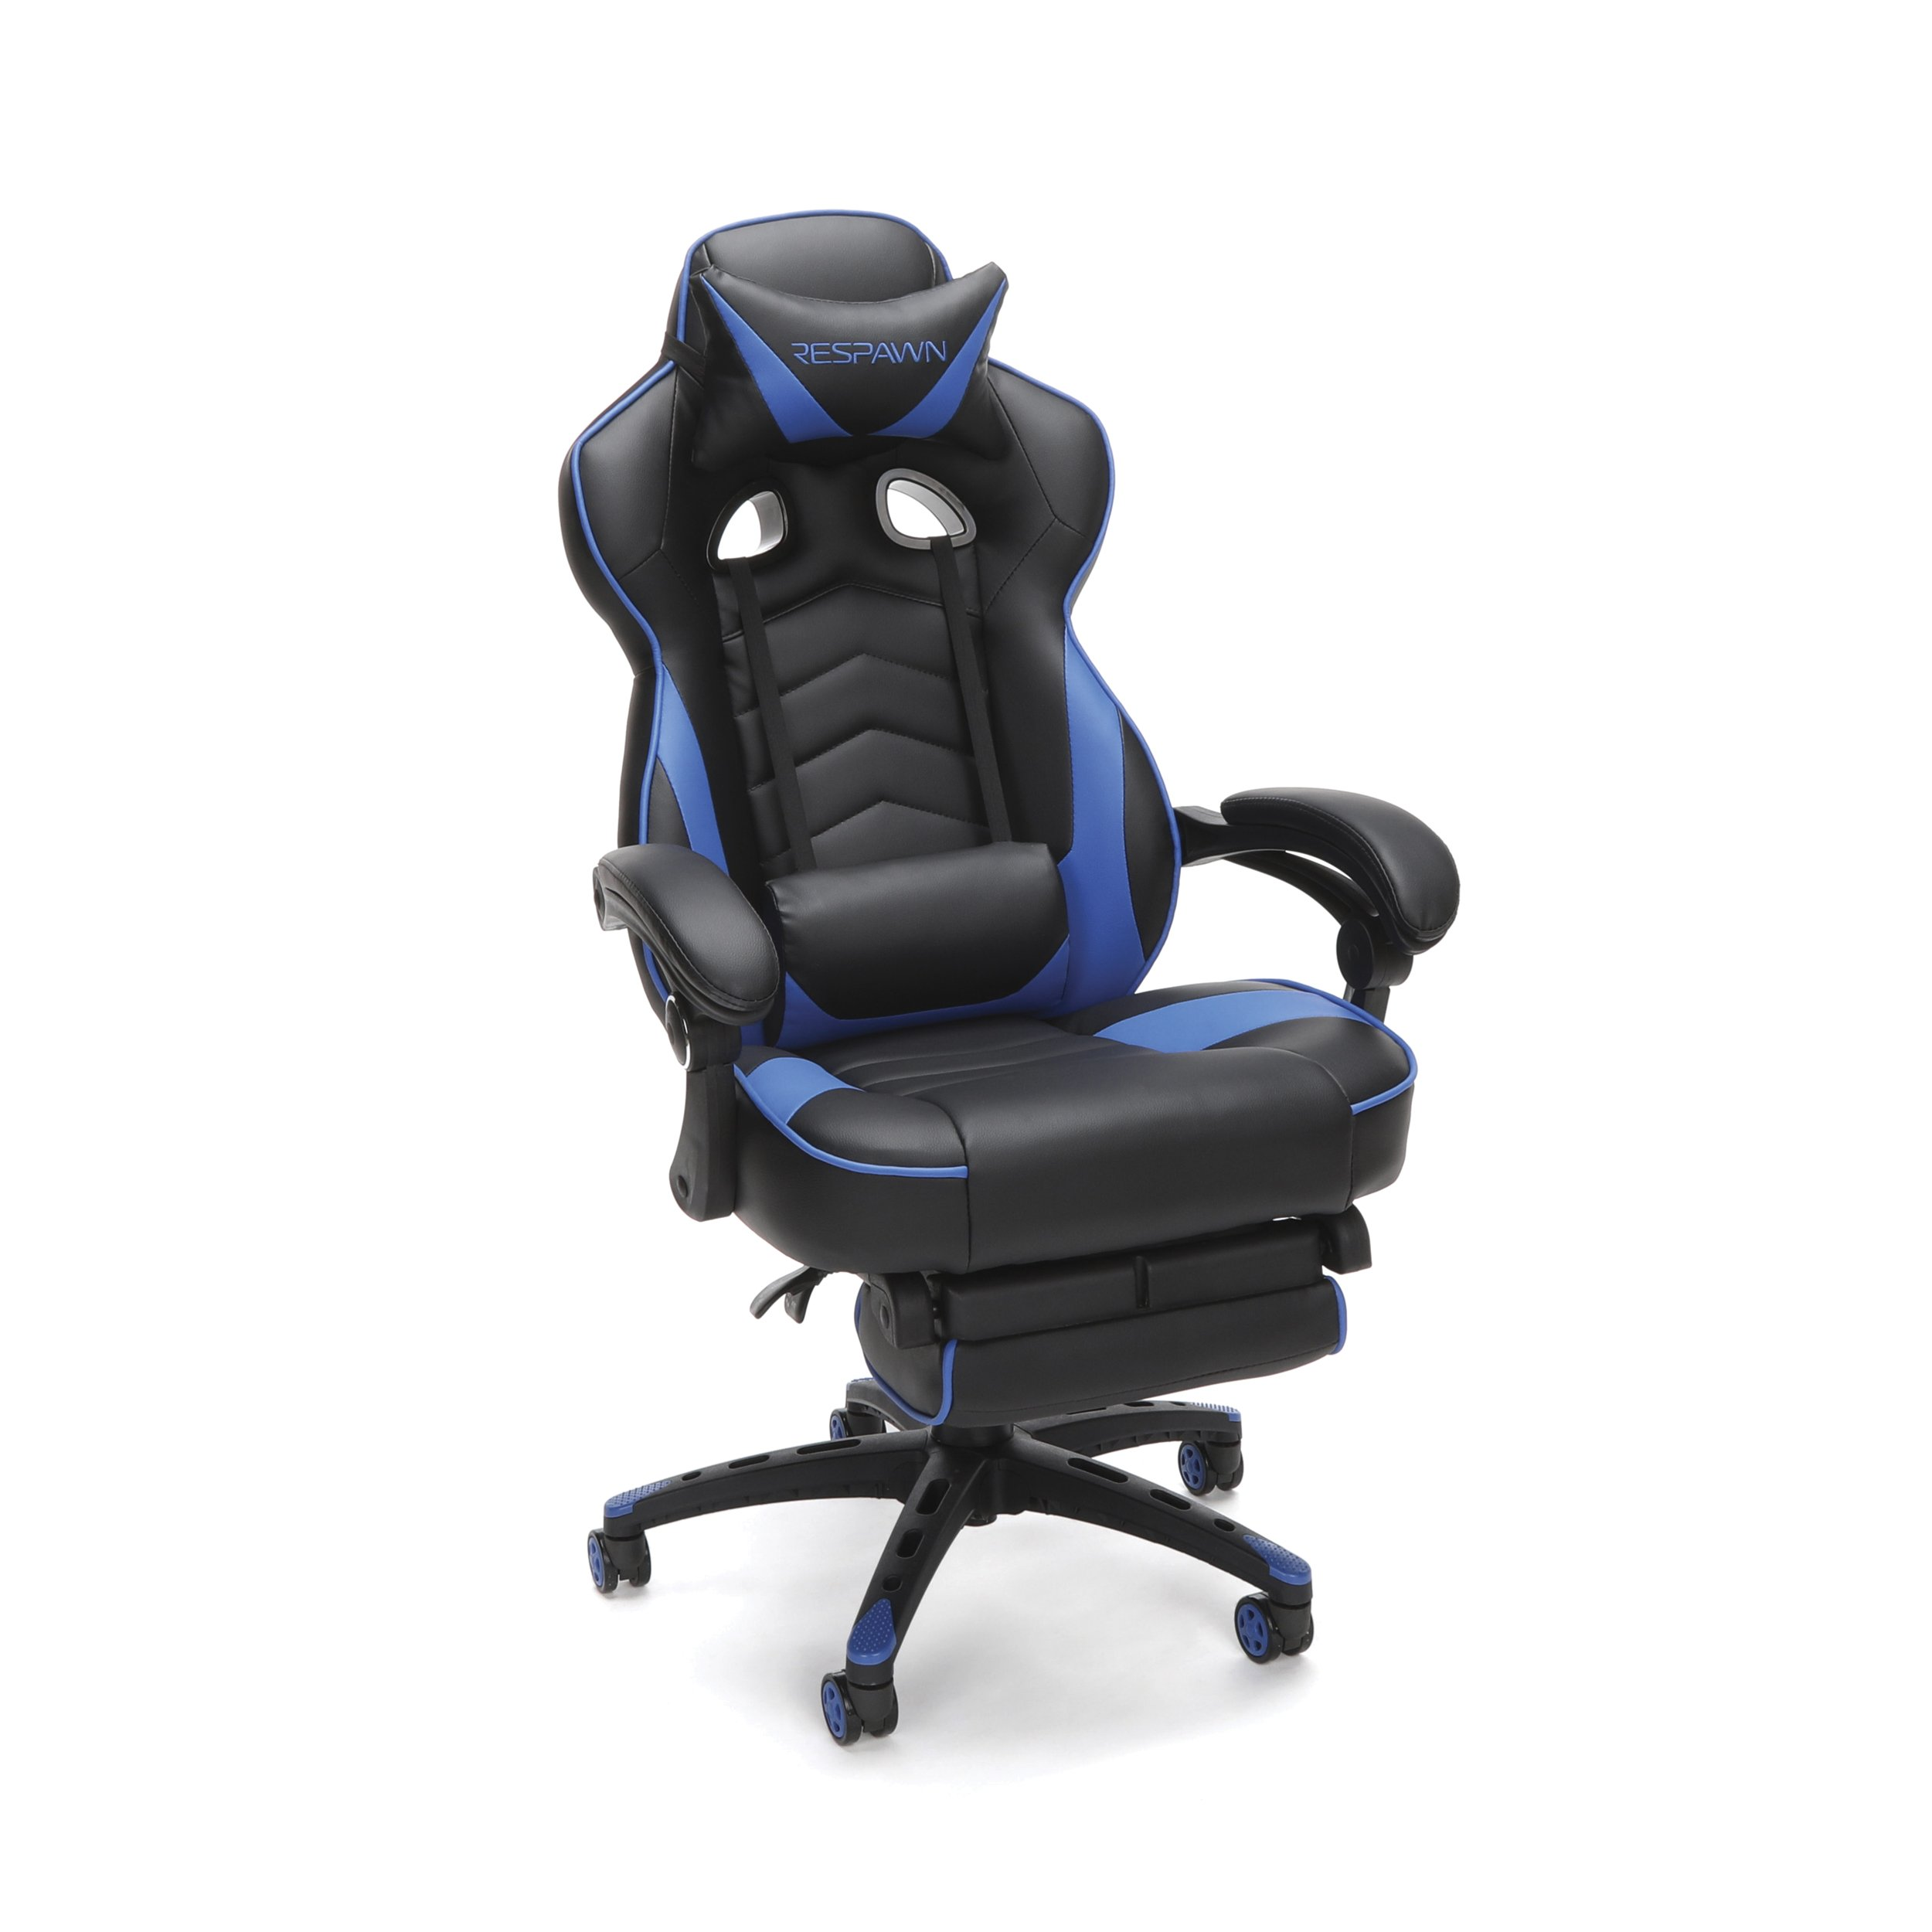 RESPAWN-110 Racing Style Gaming Chair – Reclining Ergonomic Leather Chair with Footrest, Office or Gaming Chair